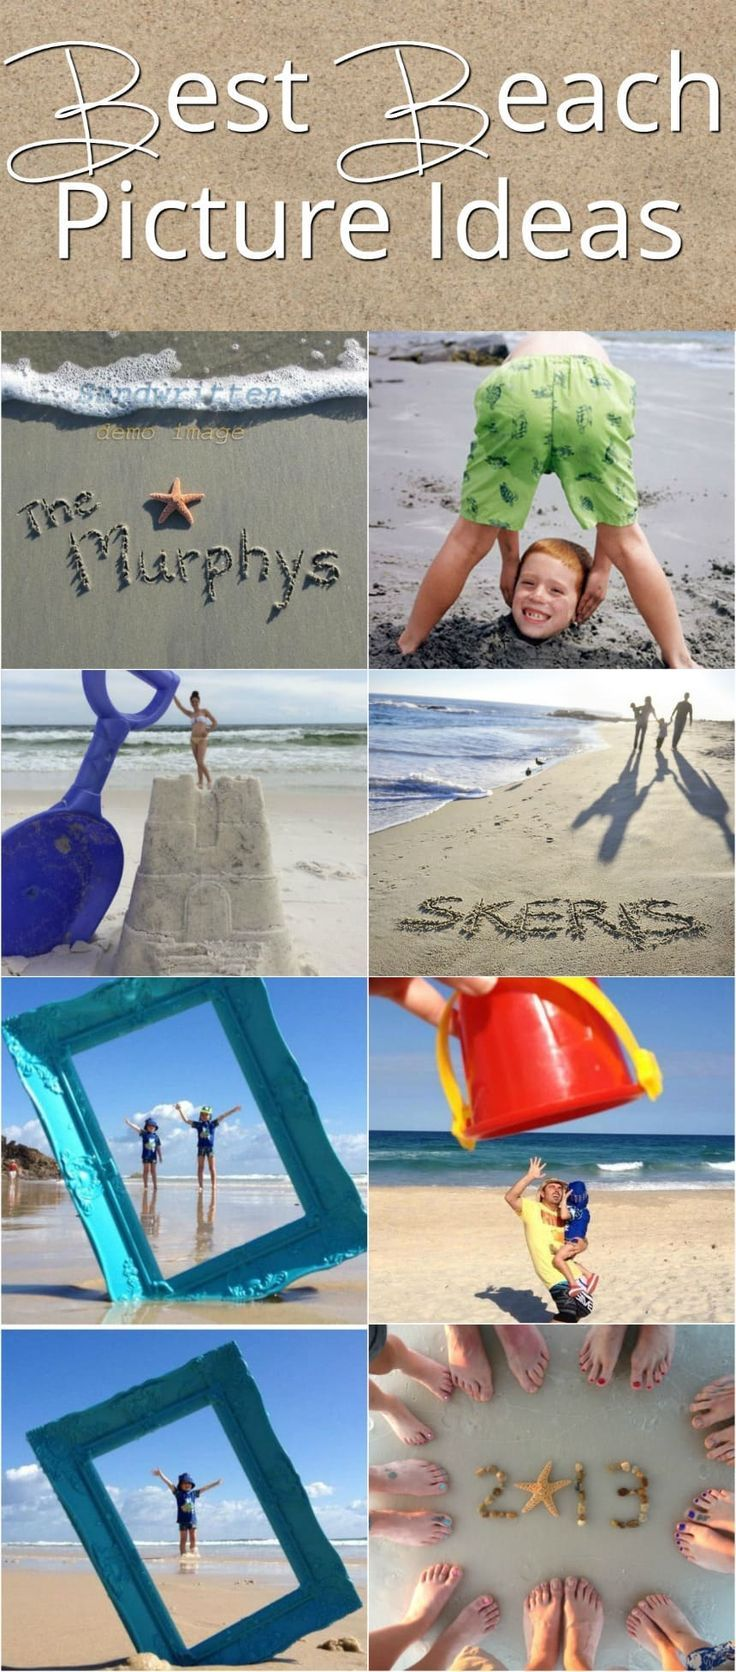 Best Beach Picture Ideas! Great Ideas For Family Vacation